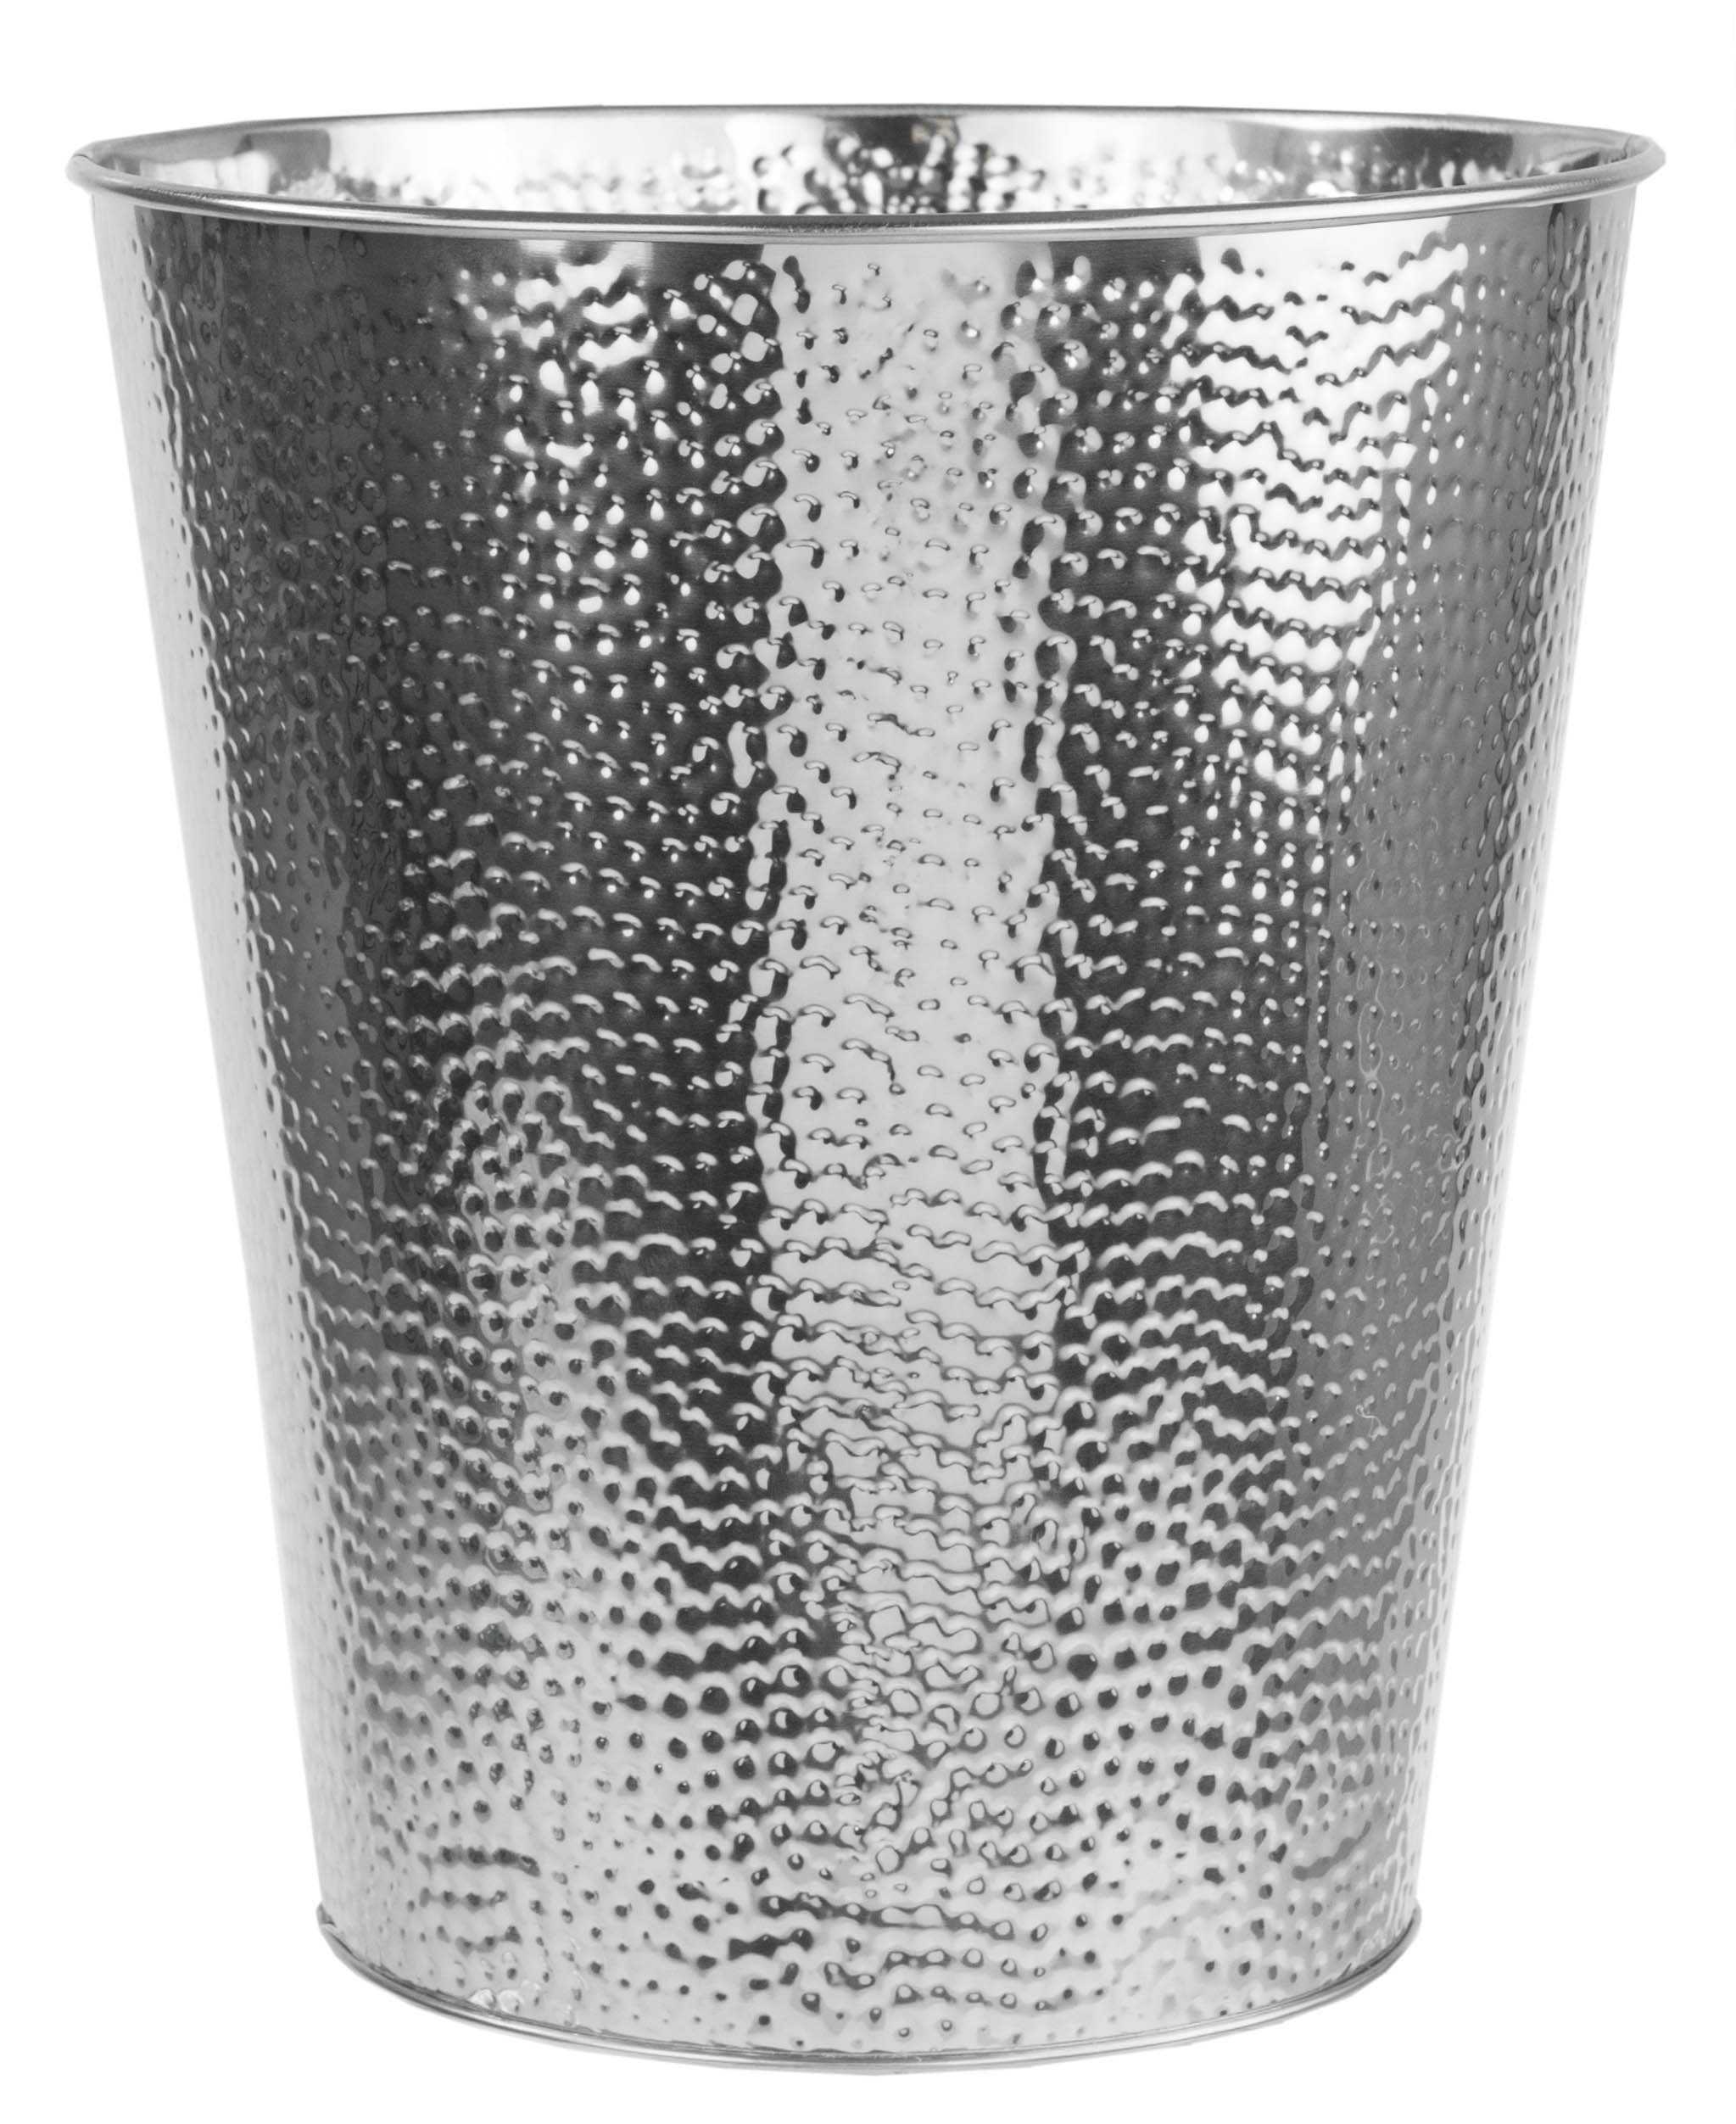 Home Basics Hammered Stainless Steel Bathroom Garbage Wastebasket bin 5 Liter 1.32 Gallon, Chrome Finish by Home Basics